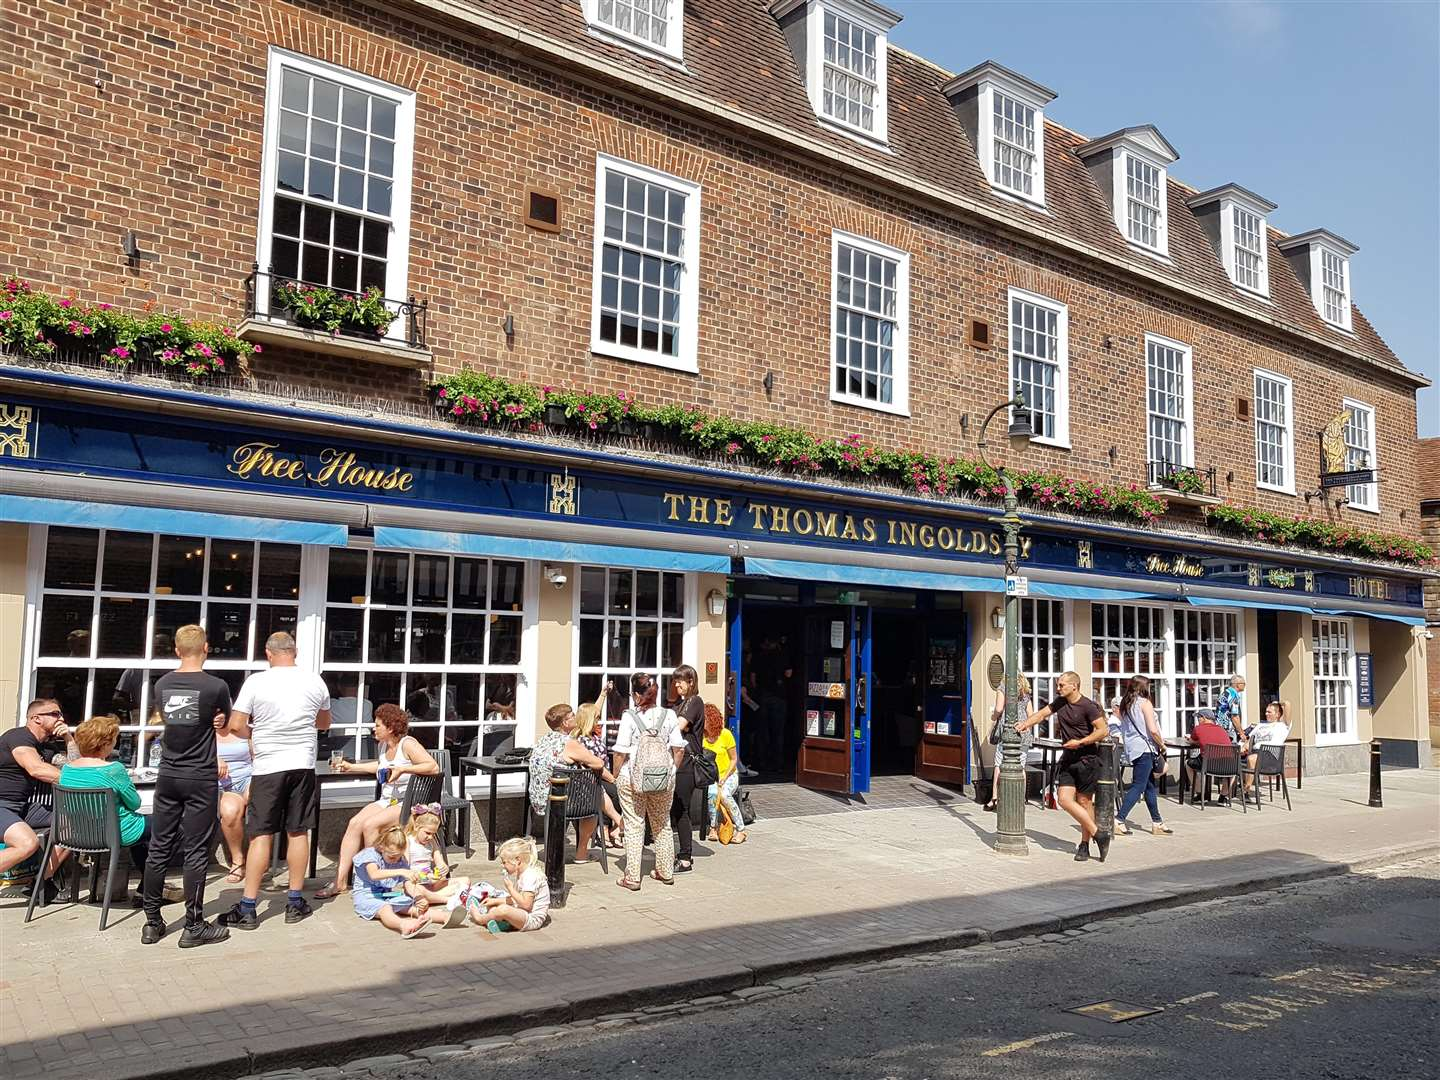 The Thomas Ingoldsby Wetherspoon pub in Canterbury, which recently added a number of hotel rooms